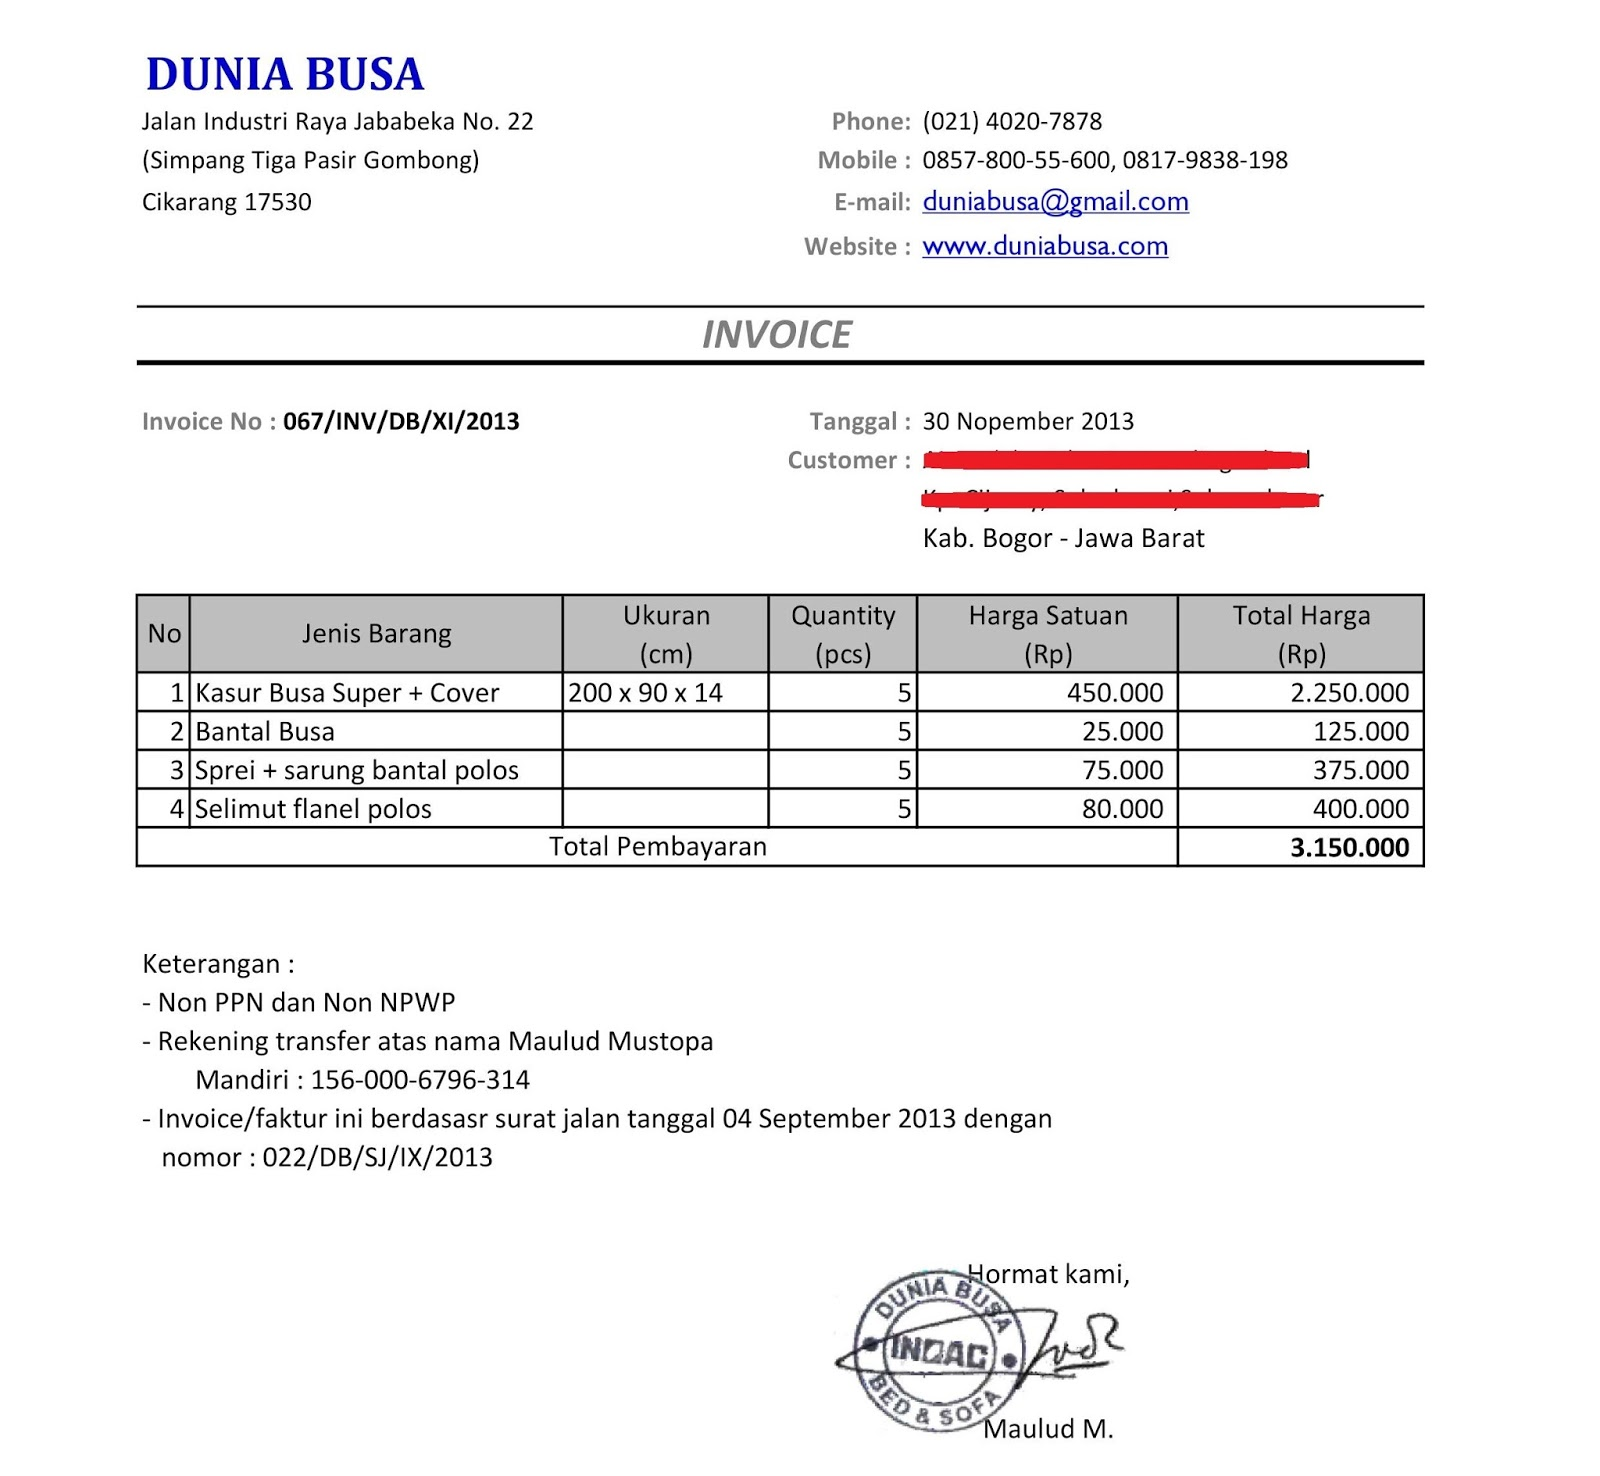 Centralasianshepherdus  Remarkable Free Invoice Online  Create Invoice Online  Invoice Template  With Outstanding Contoh Format Invoice Atau Surat Tagihan  Brankas Arsip  Free Invoice Online With Lovely  Forester Invoice Price Also Free Invoice Creator Online In Addition Best Invoice Apps And Official Invoice Template As Well As Trucking Invoice Template Free Additionally Drupal Commerce Invoice From Sklepco With Centralasianshepherdus  Outstanding Free Invoice Online  Create Invoice Online  Invoice Template  With Lovely Contoh Format Invoice Atau Surat Tagihan  Brankas Arsip  Free Invoice Online And Remarkable  Forester Invoice Price Also Free Invoice Creator Online In Addition Best Invoice Apps From Sklepco